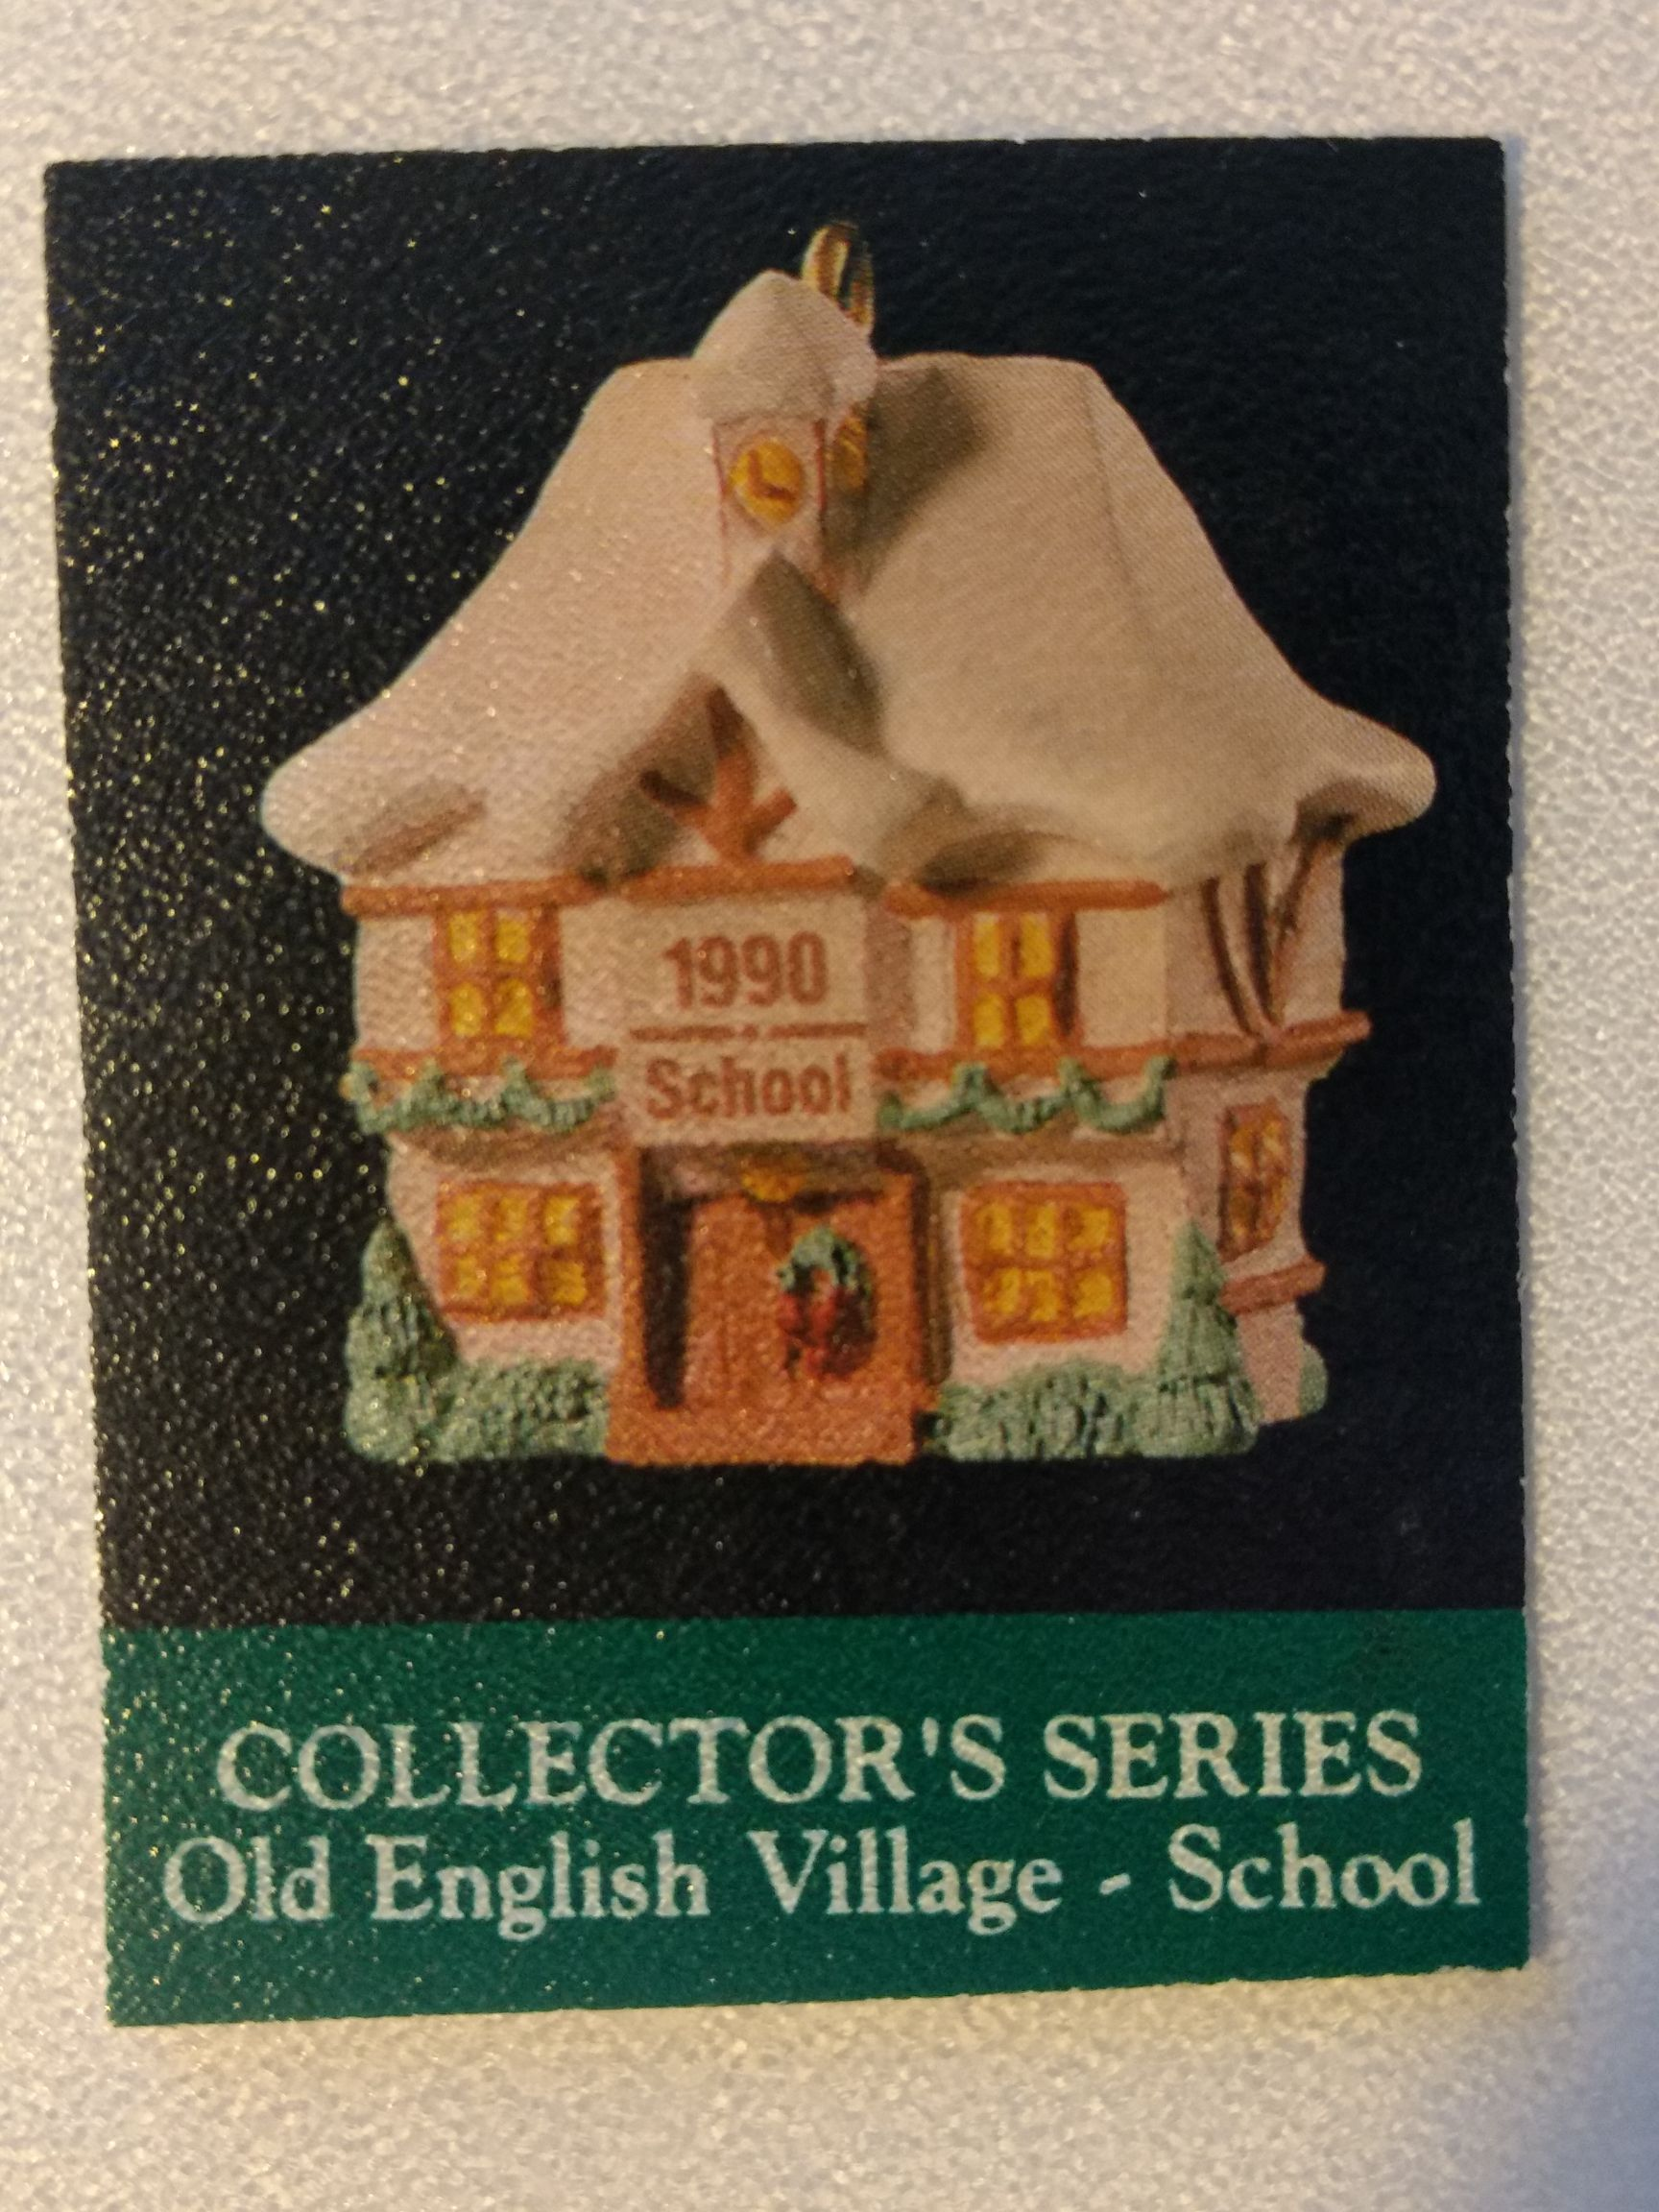 Z - Buildings - Old English Village Ornament - Hallmark front image (front cover)